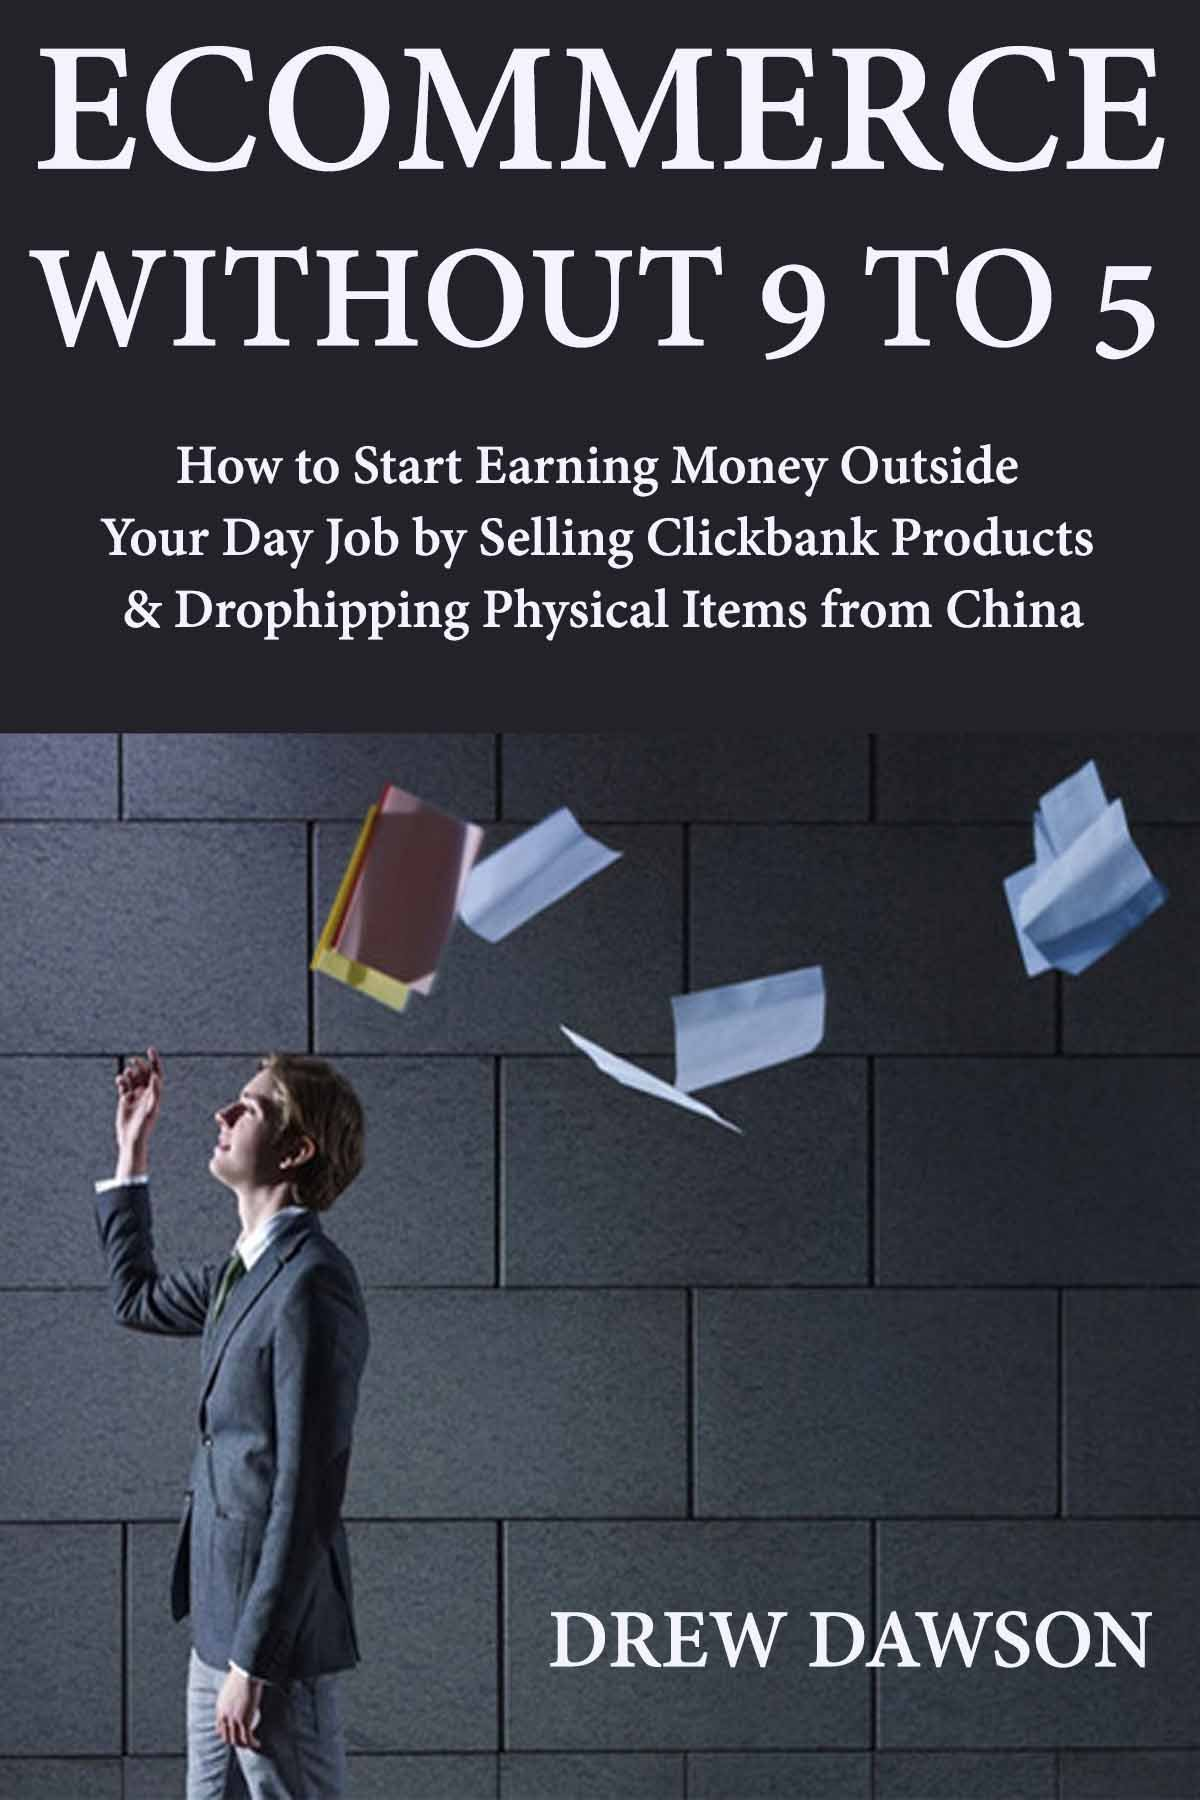 Ecommerce Without 9 to 5: How to Start Earning Money Outside Your Day Job by Selling Clickbank Products & Drophipping Physical Items from China